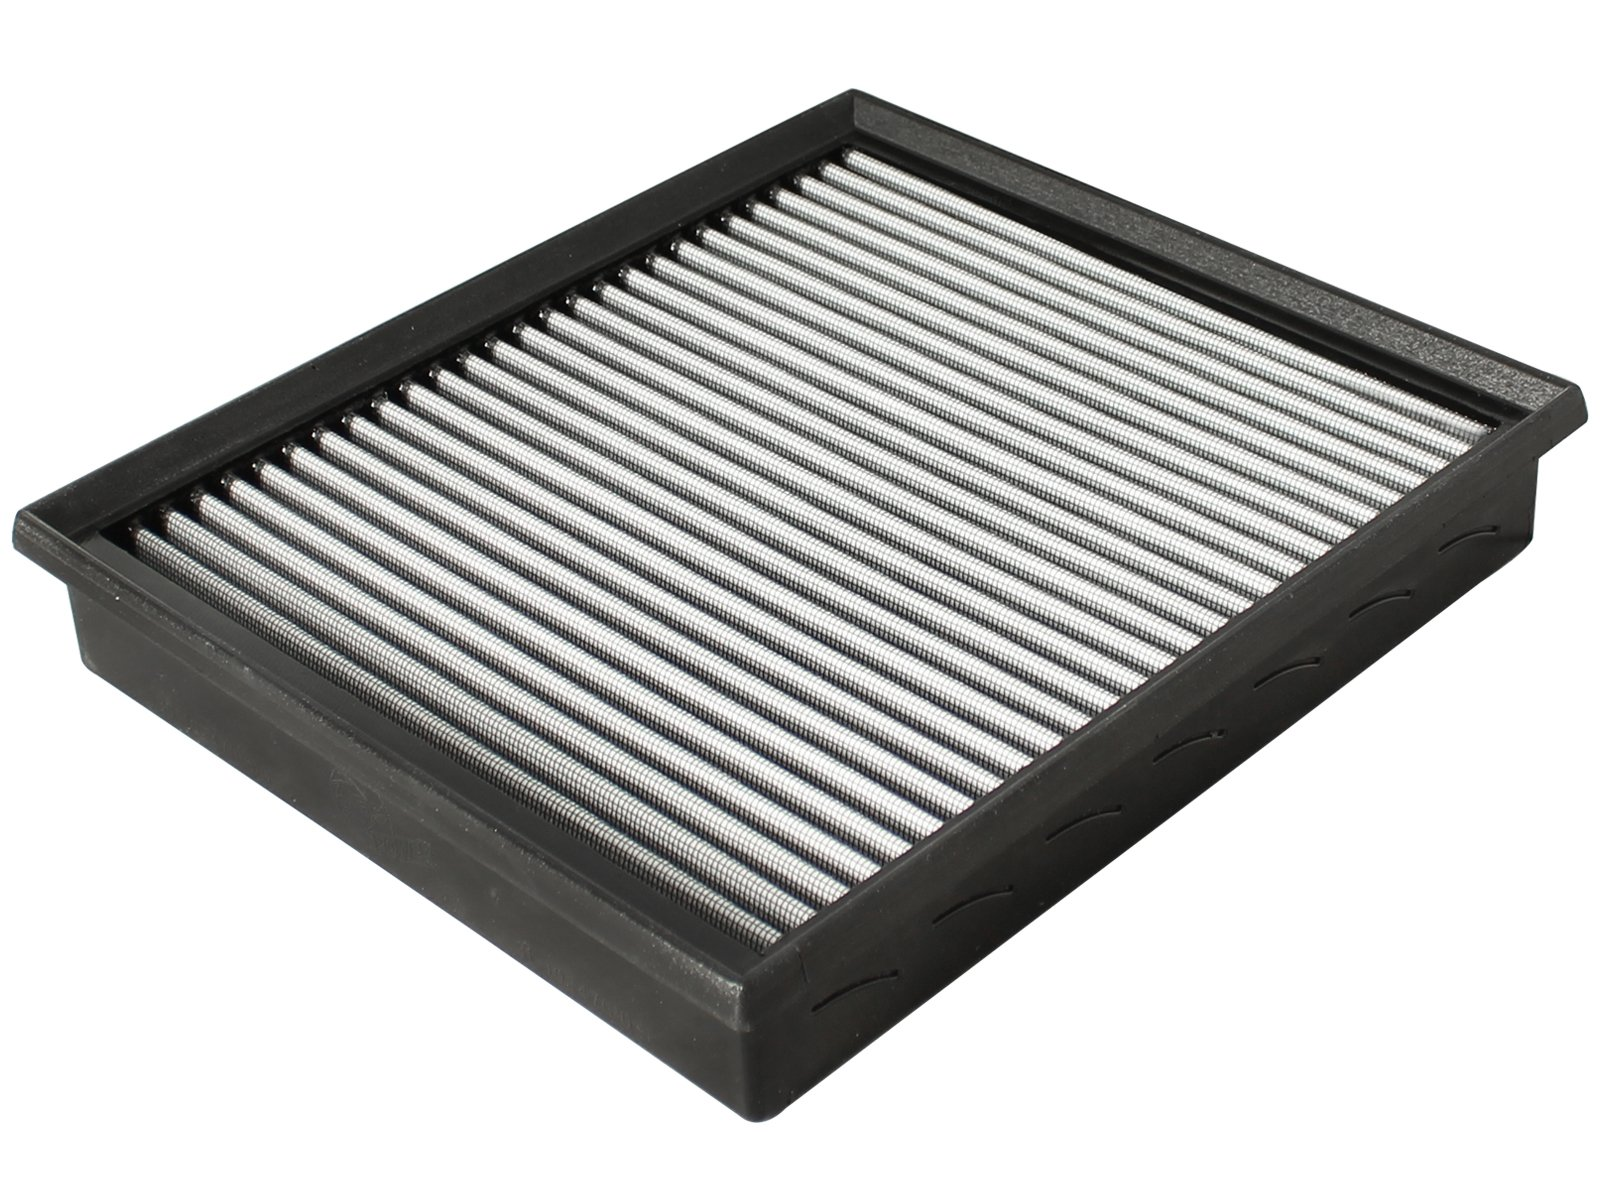 aFe Power 31-10247 Magnum Flow Performance Air Filter (Dry, 3-Layer) by aFe Power